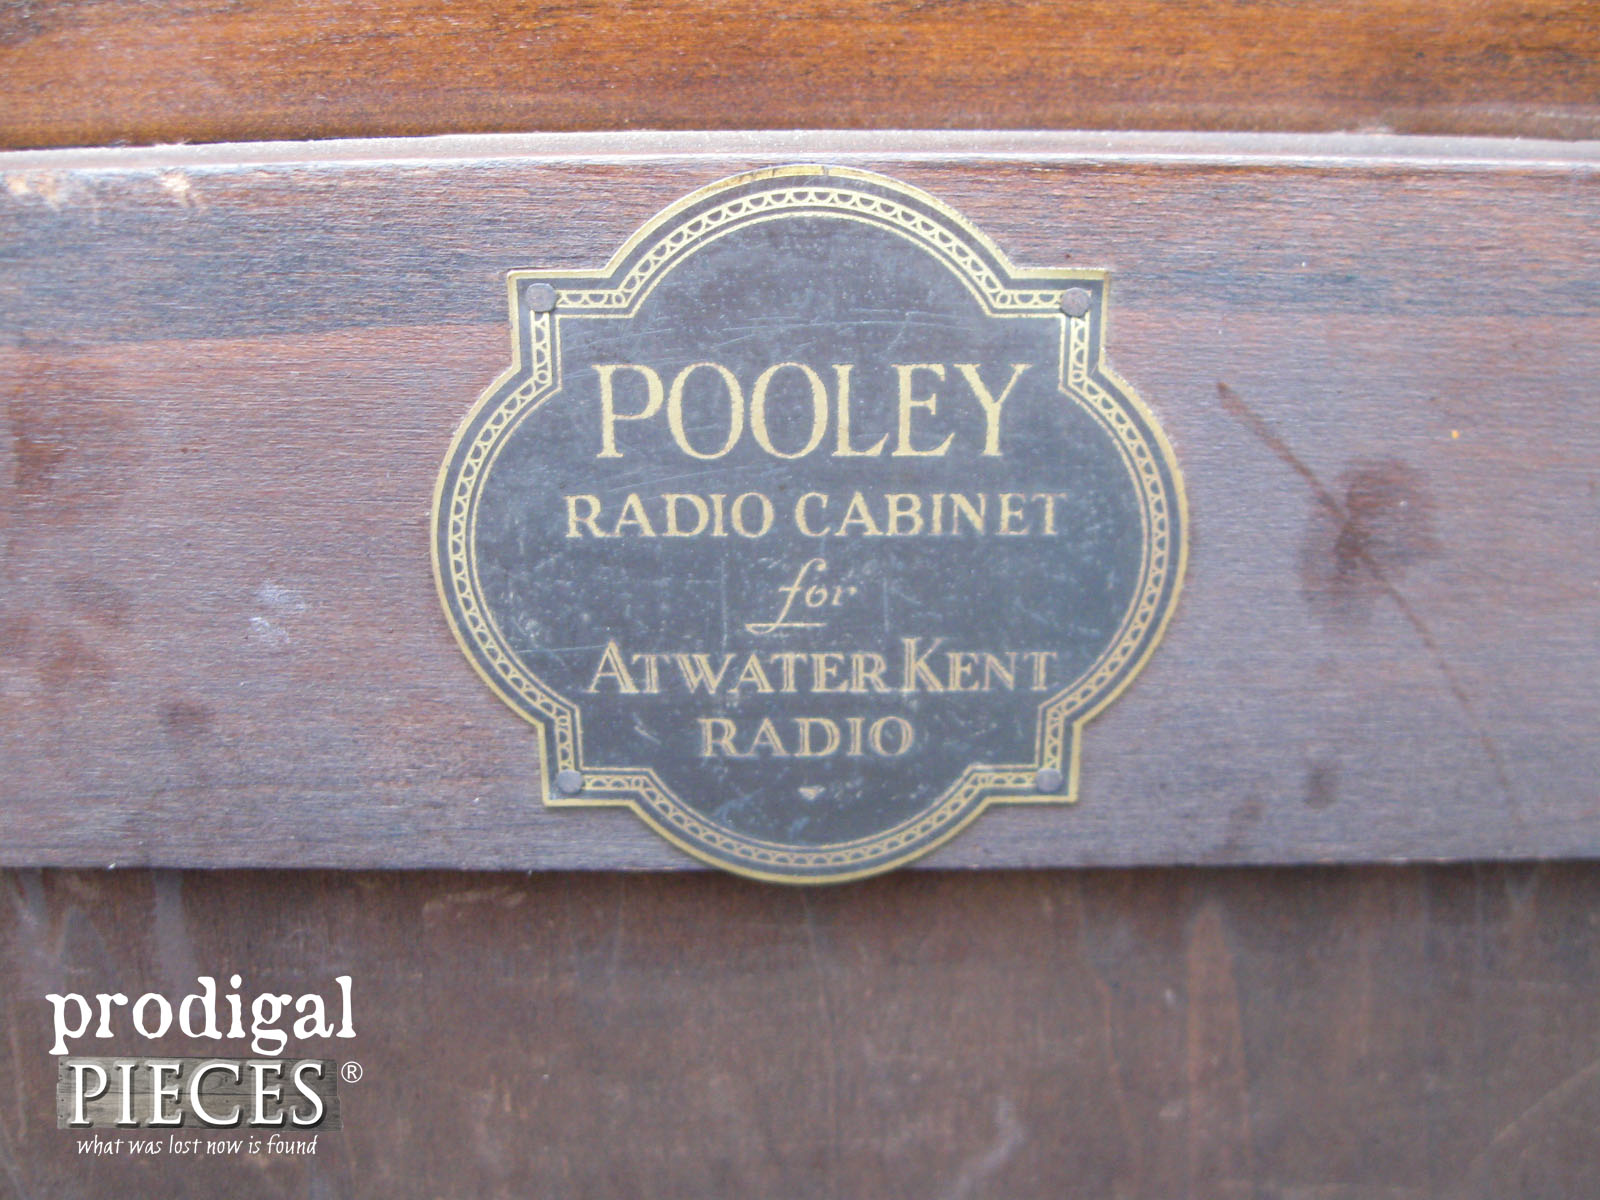 Original Antique Pooley Radio Cabinet | Prodigal Pieces | www.prodigalpieces.com